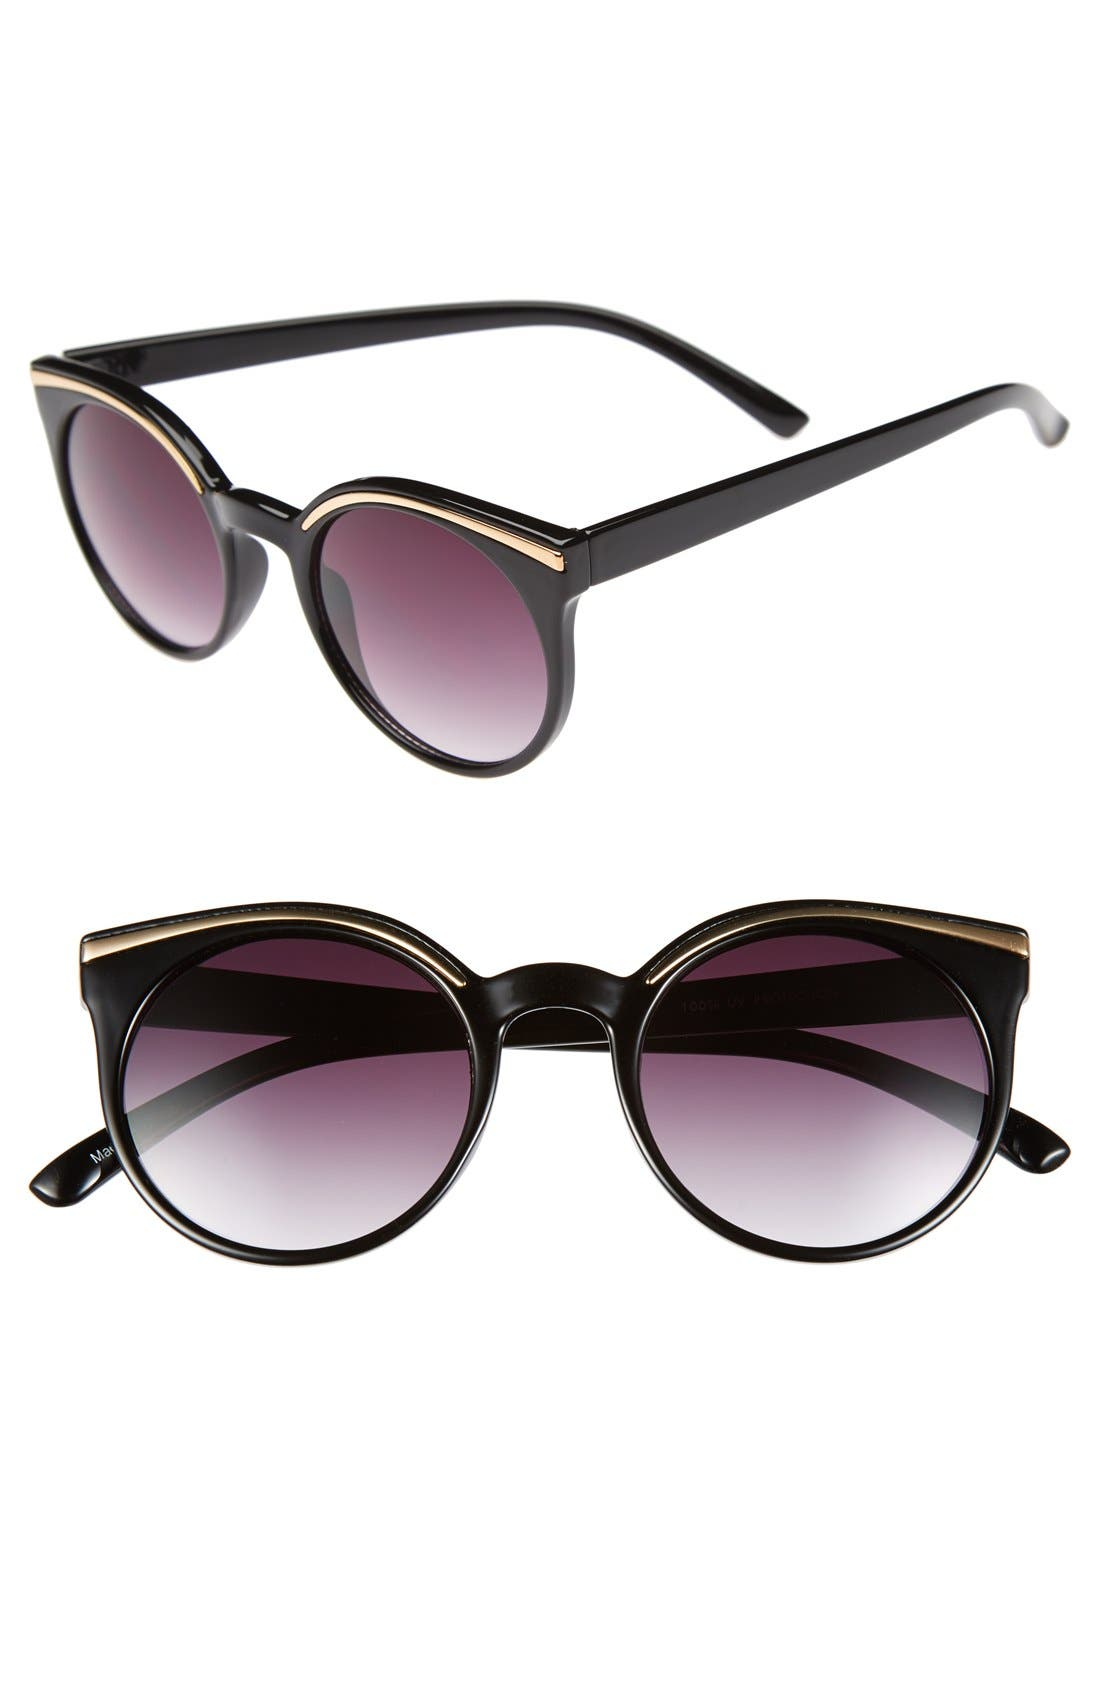 Main Image - Fantas Eyes 'Cherry' 63mm Sunglasses